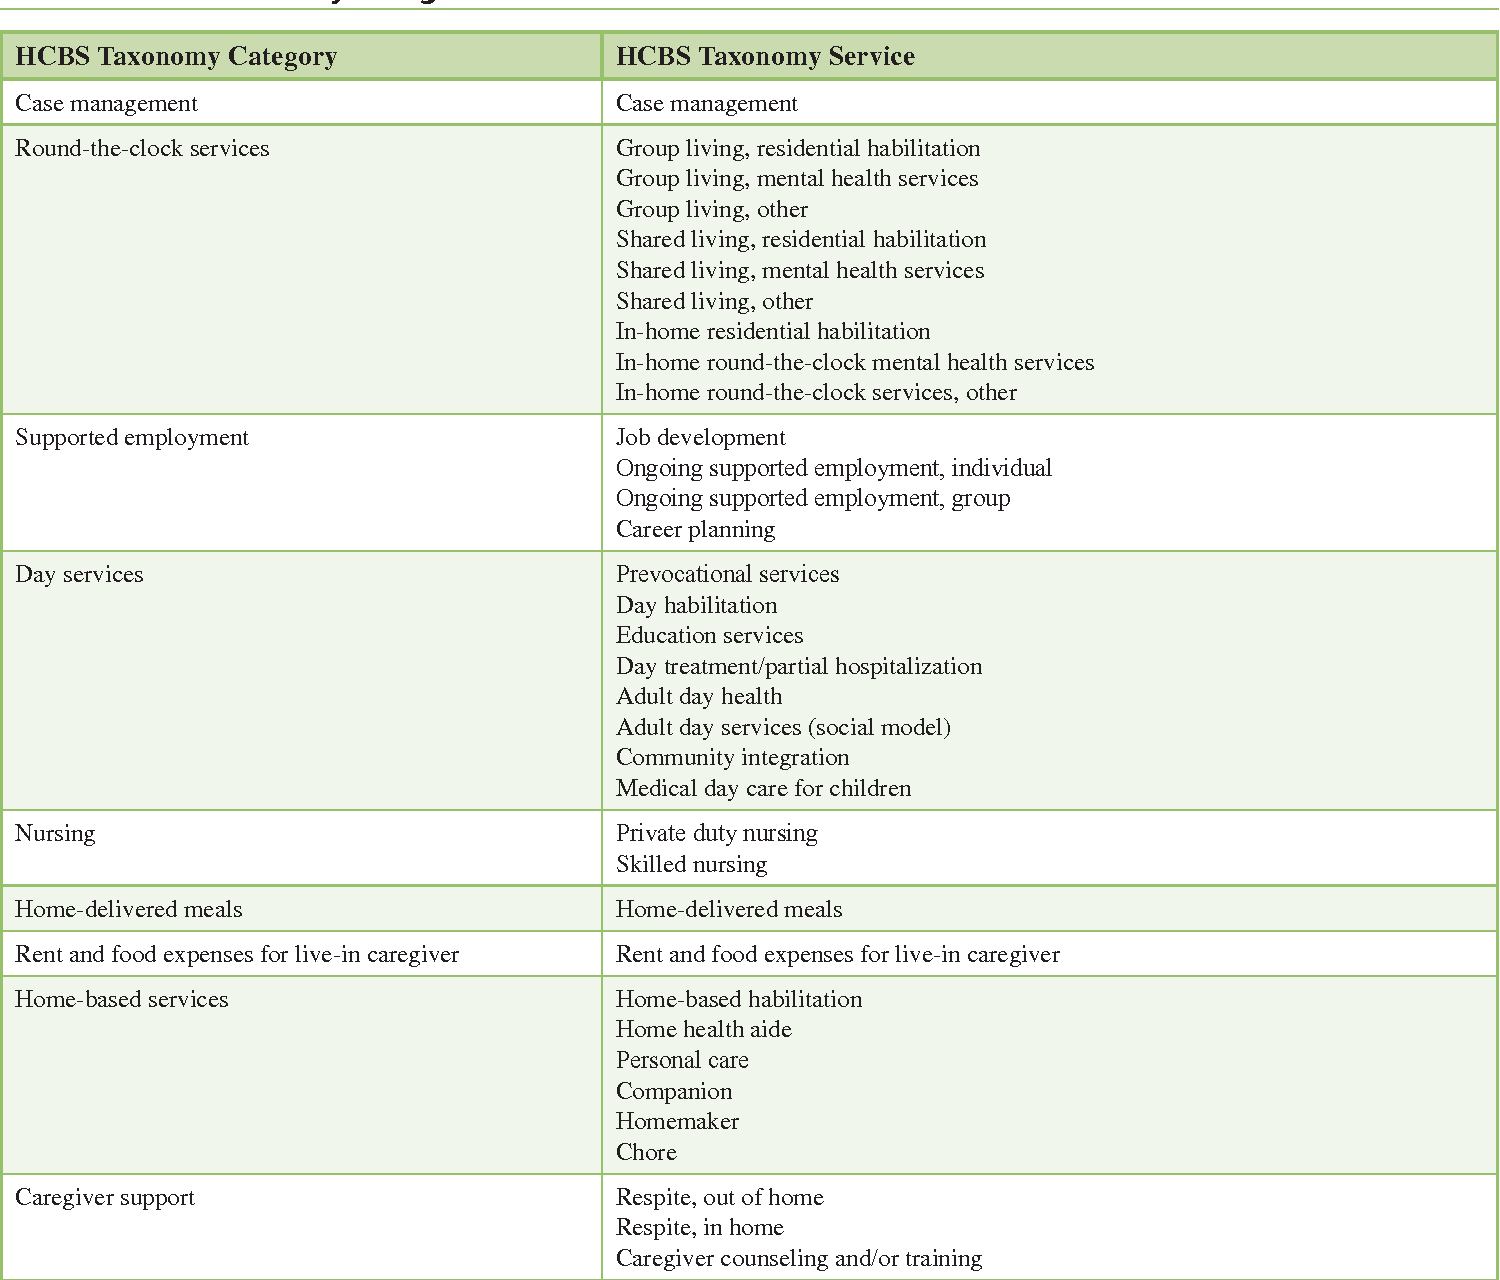 The HCBS taxonomy: a new language for classifying home- and ...